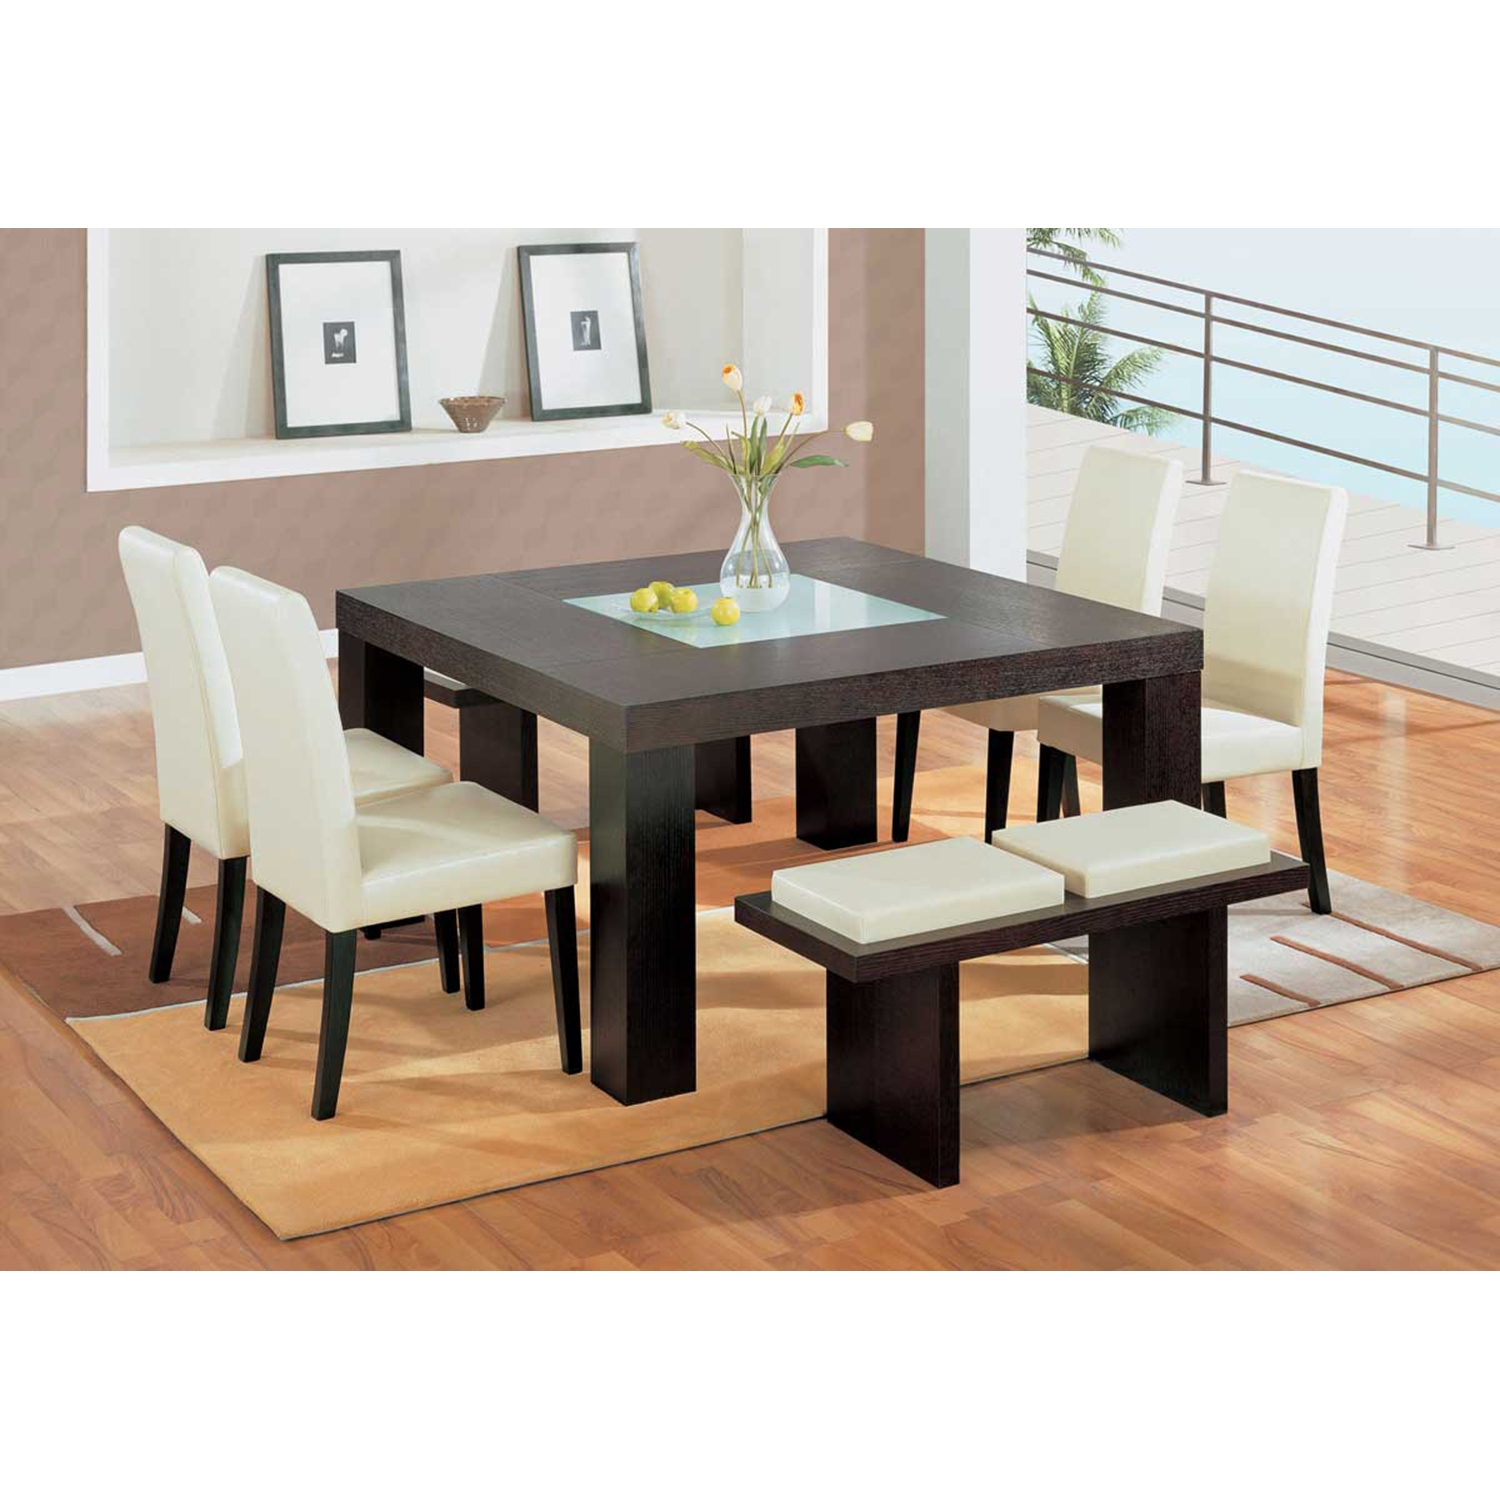 Tristan 6-Piece Dining Set, Beige Chairs, Wenge Table